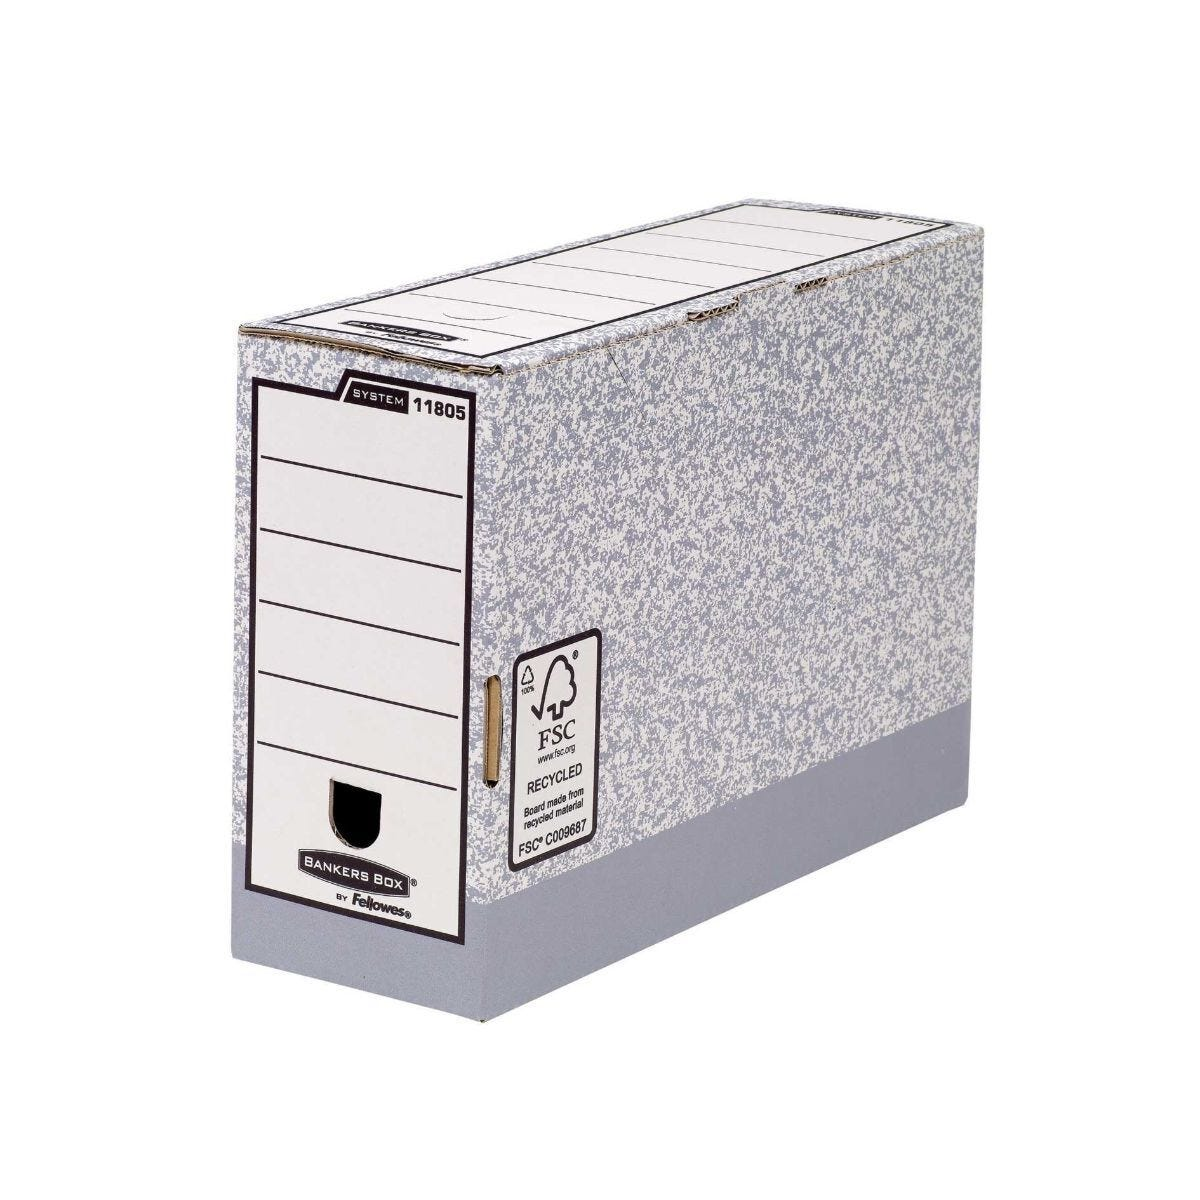 Bankers Box by Fellowes System A4 Transfer Files  with Fastfold 100mm